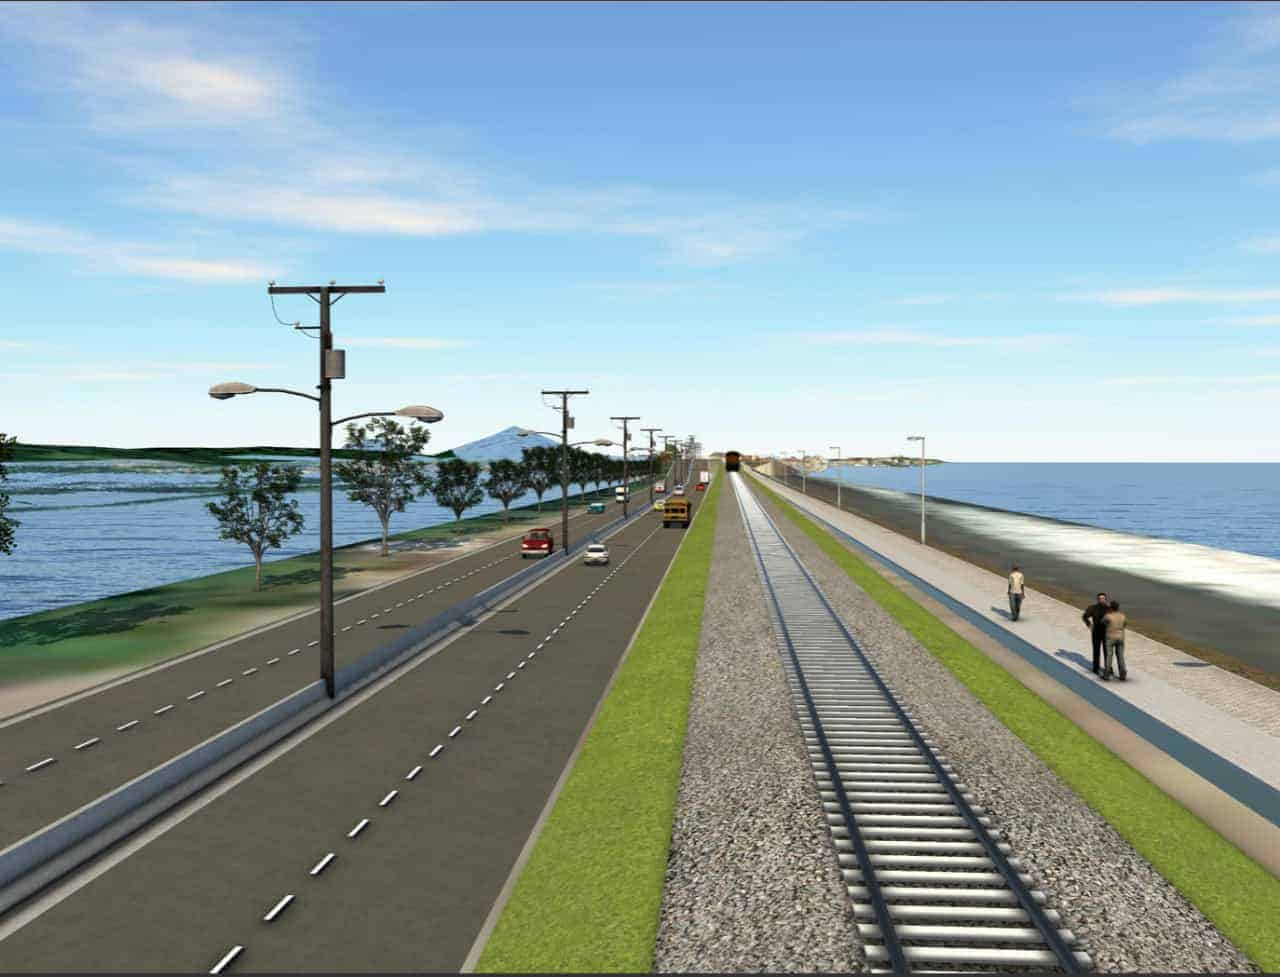 Artist's rendition of the highway expansion in Puntarenas